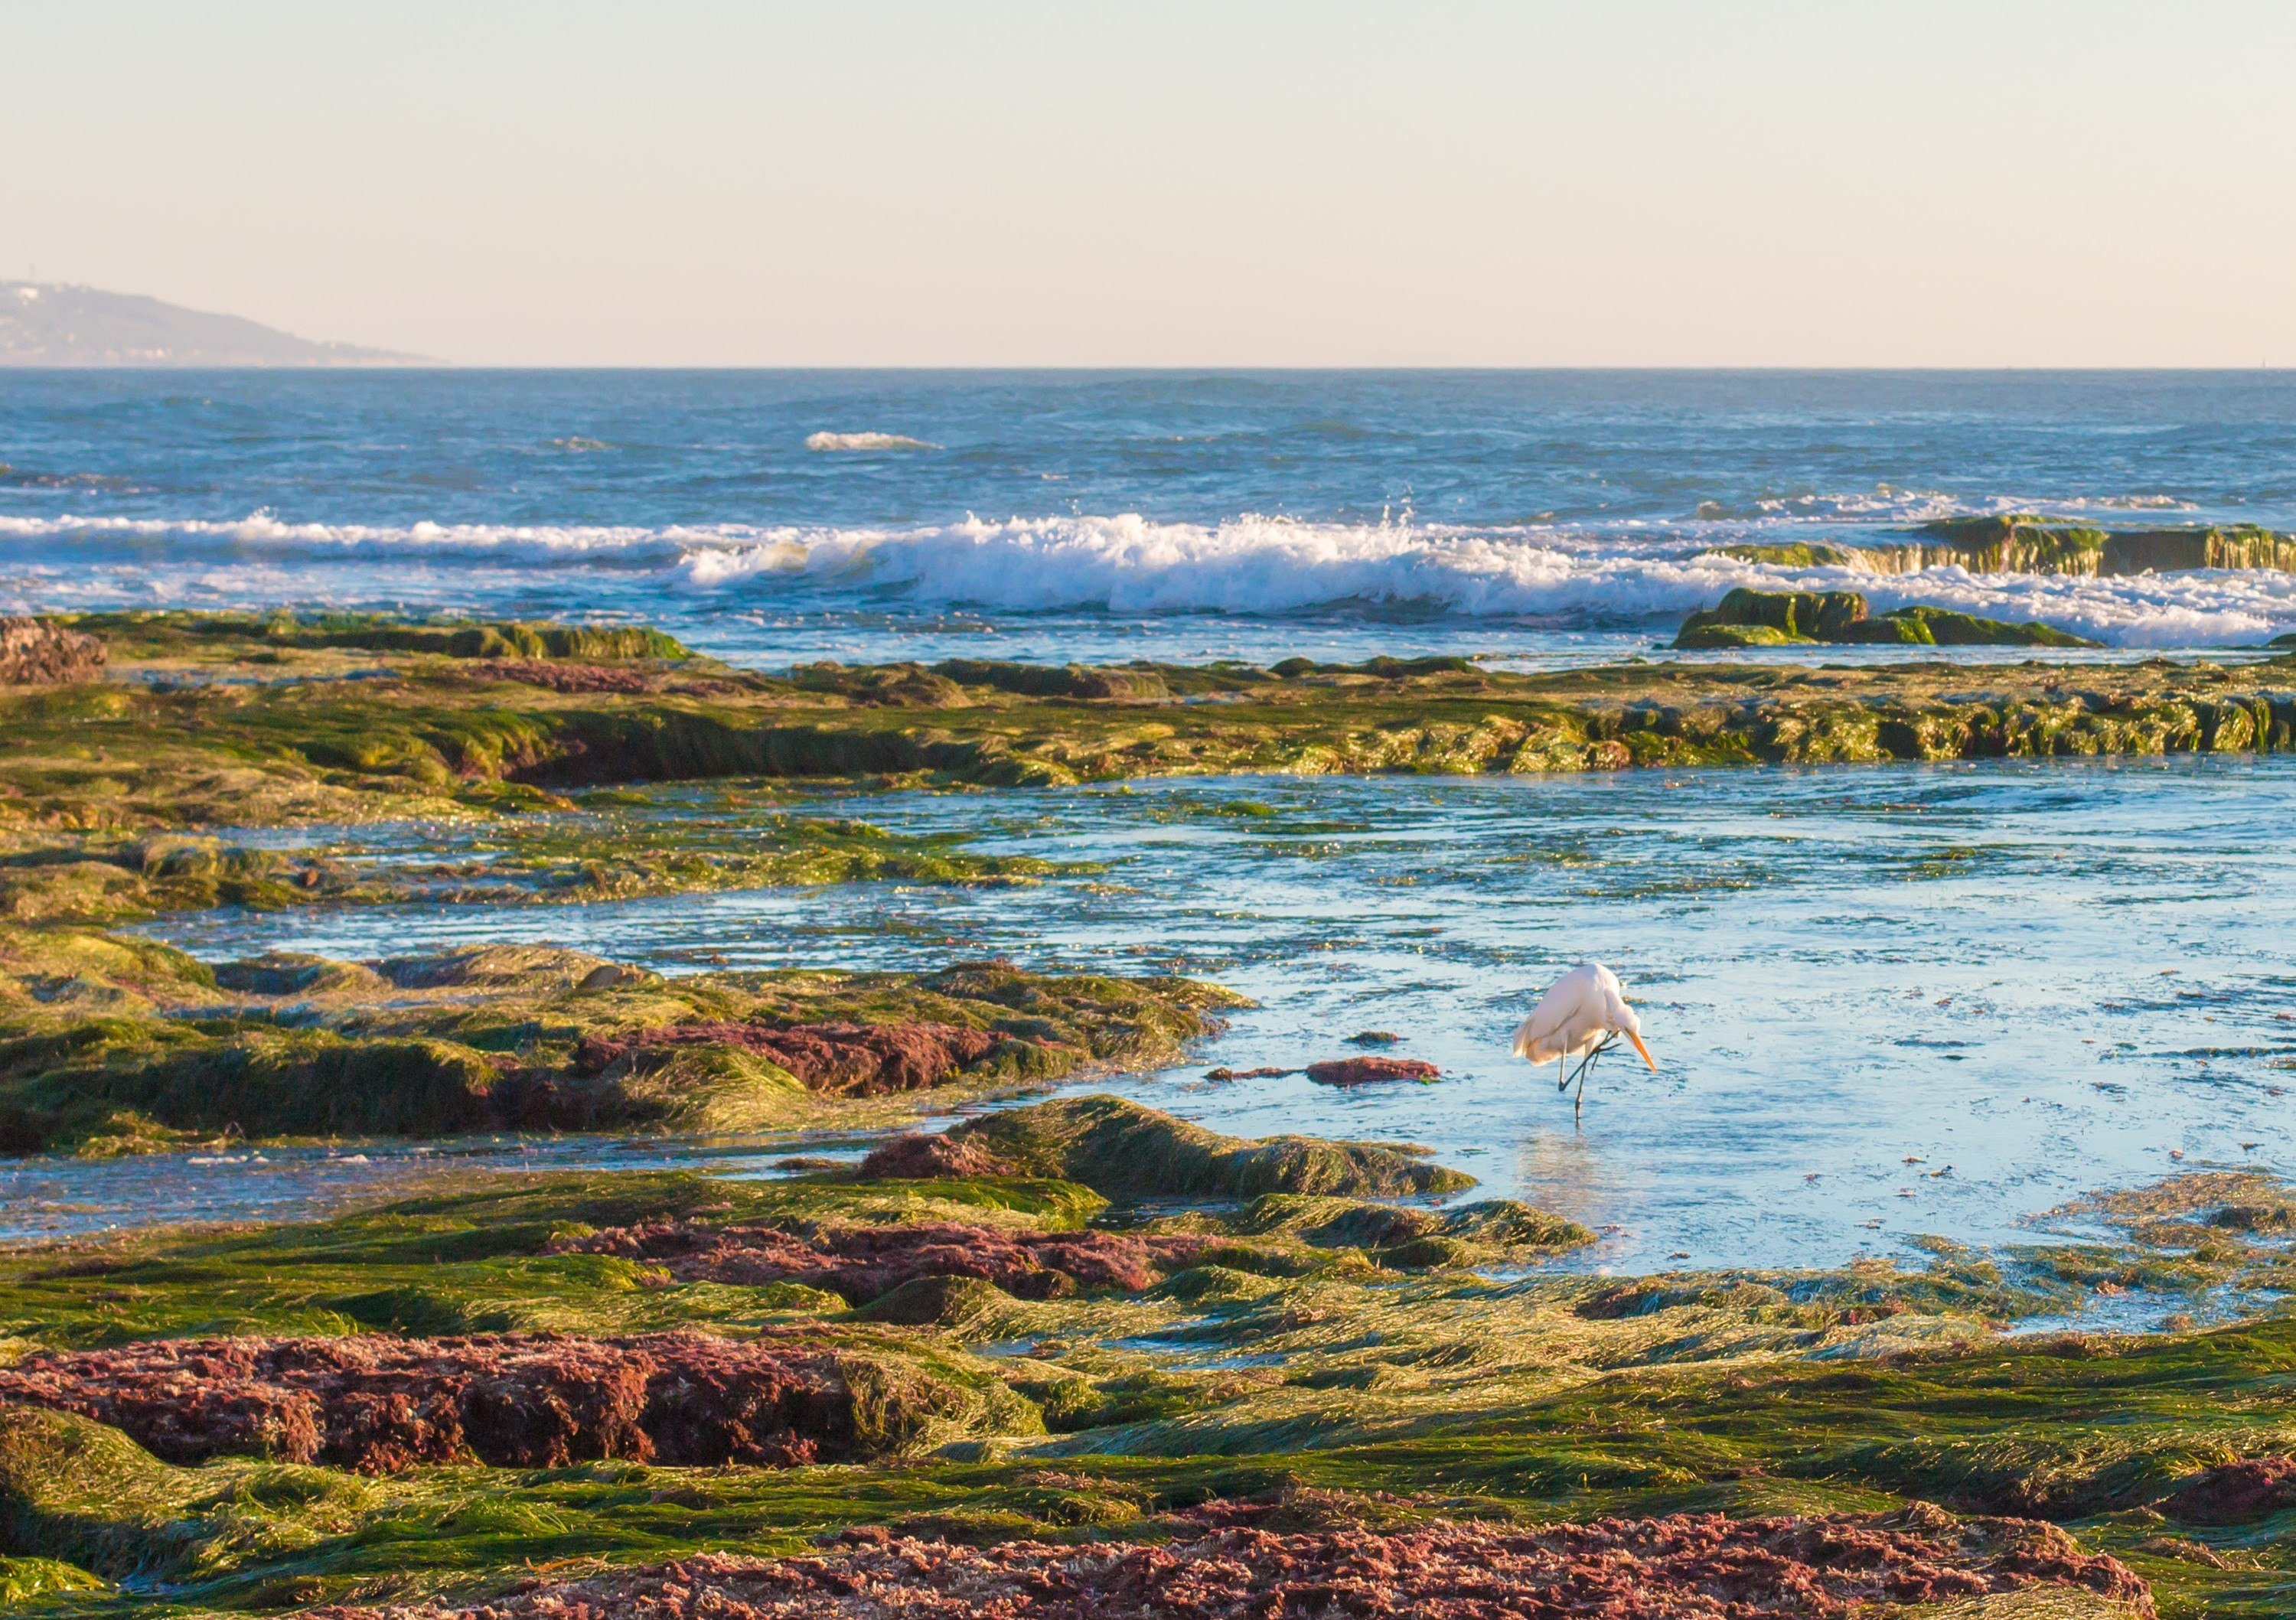 Best Tide Pools in San Diego - Top 8 Tide Pools - La Jolla Mom